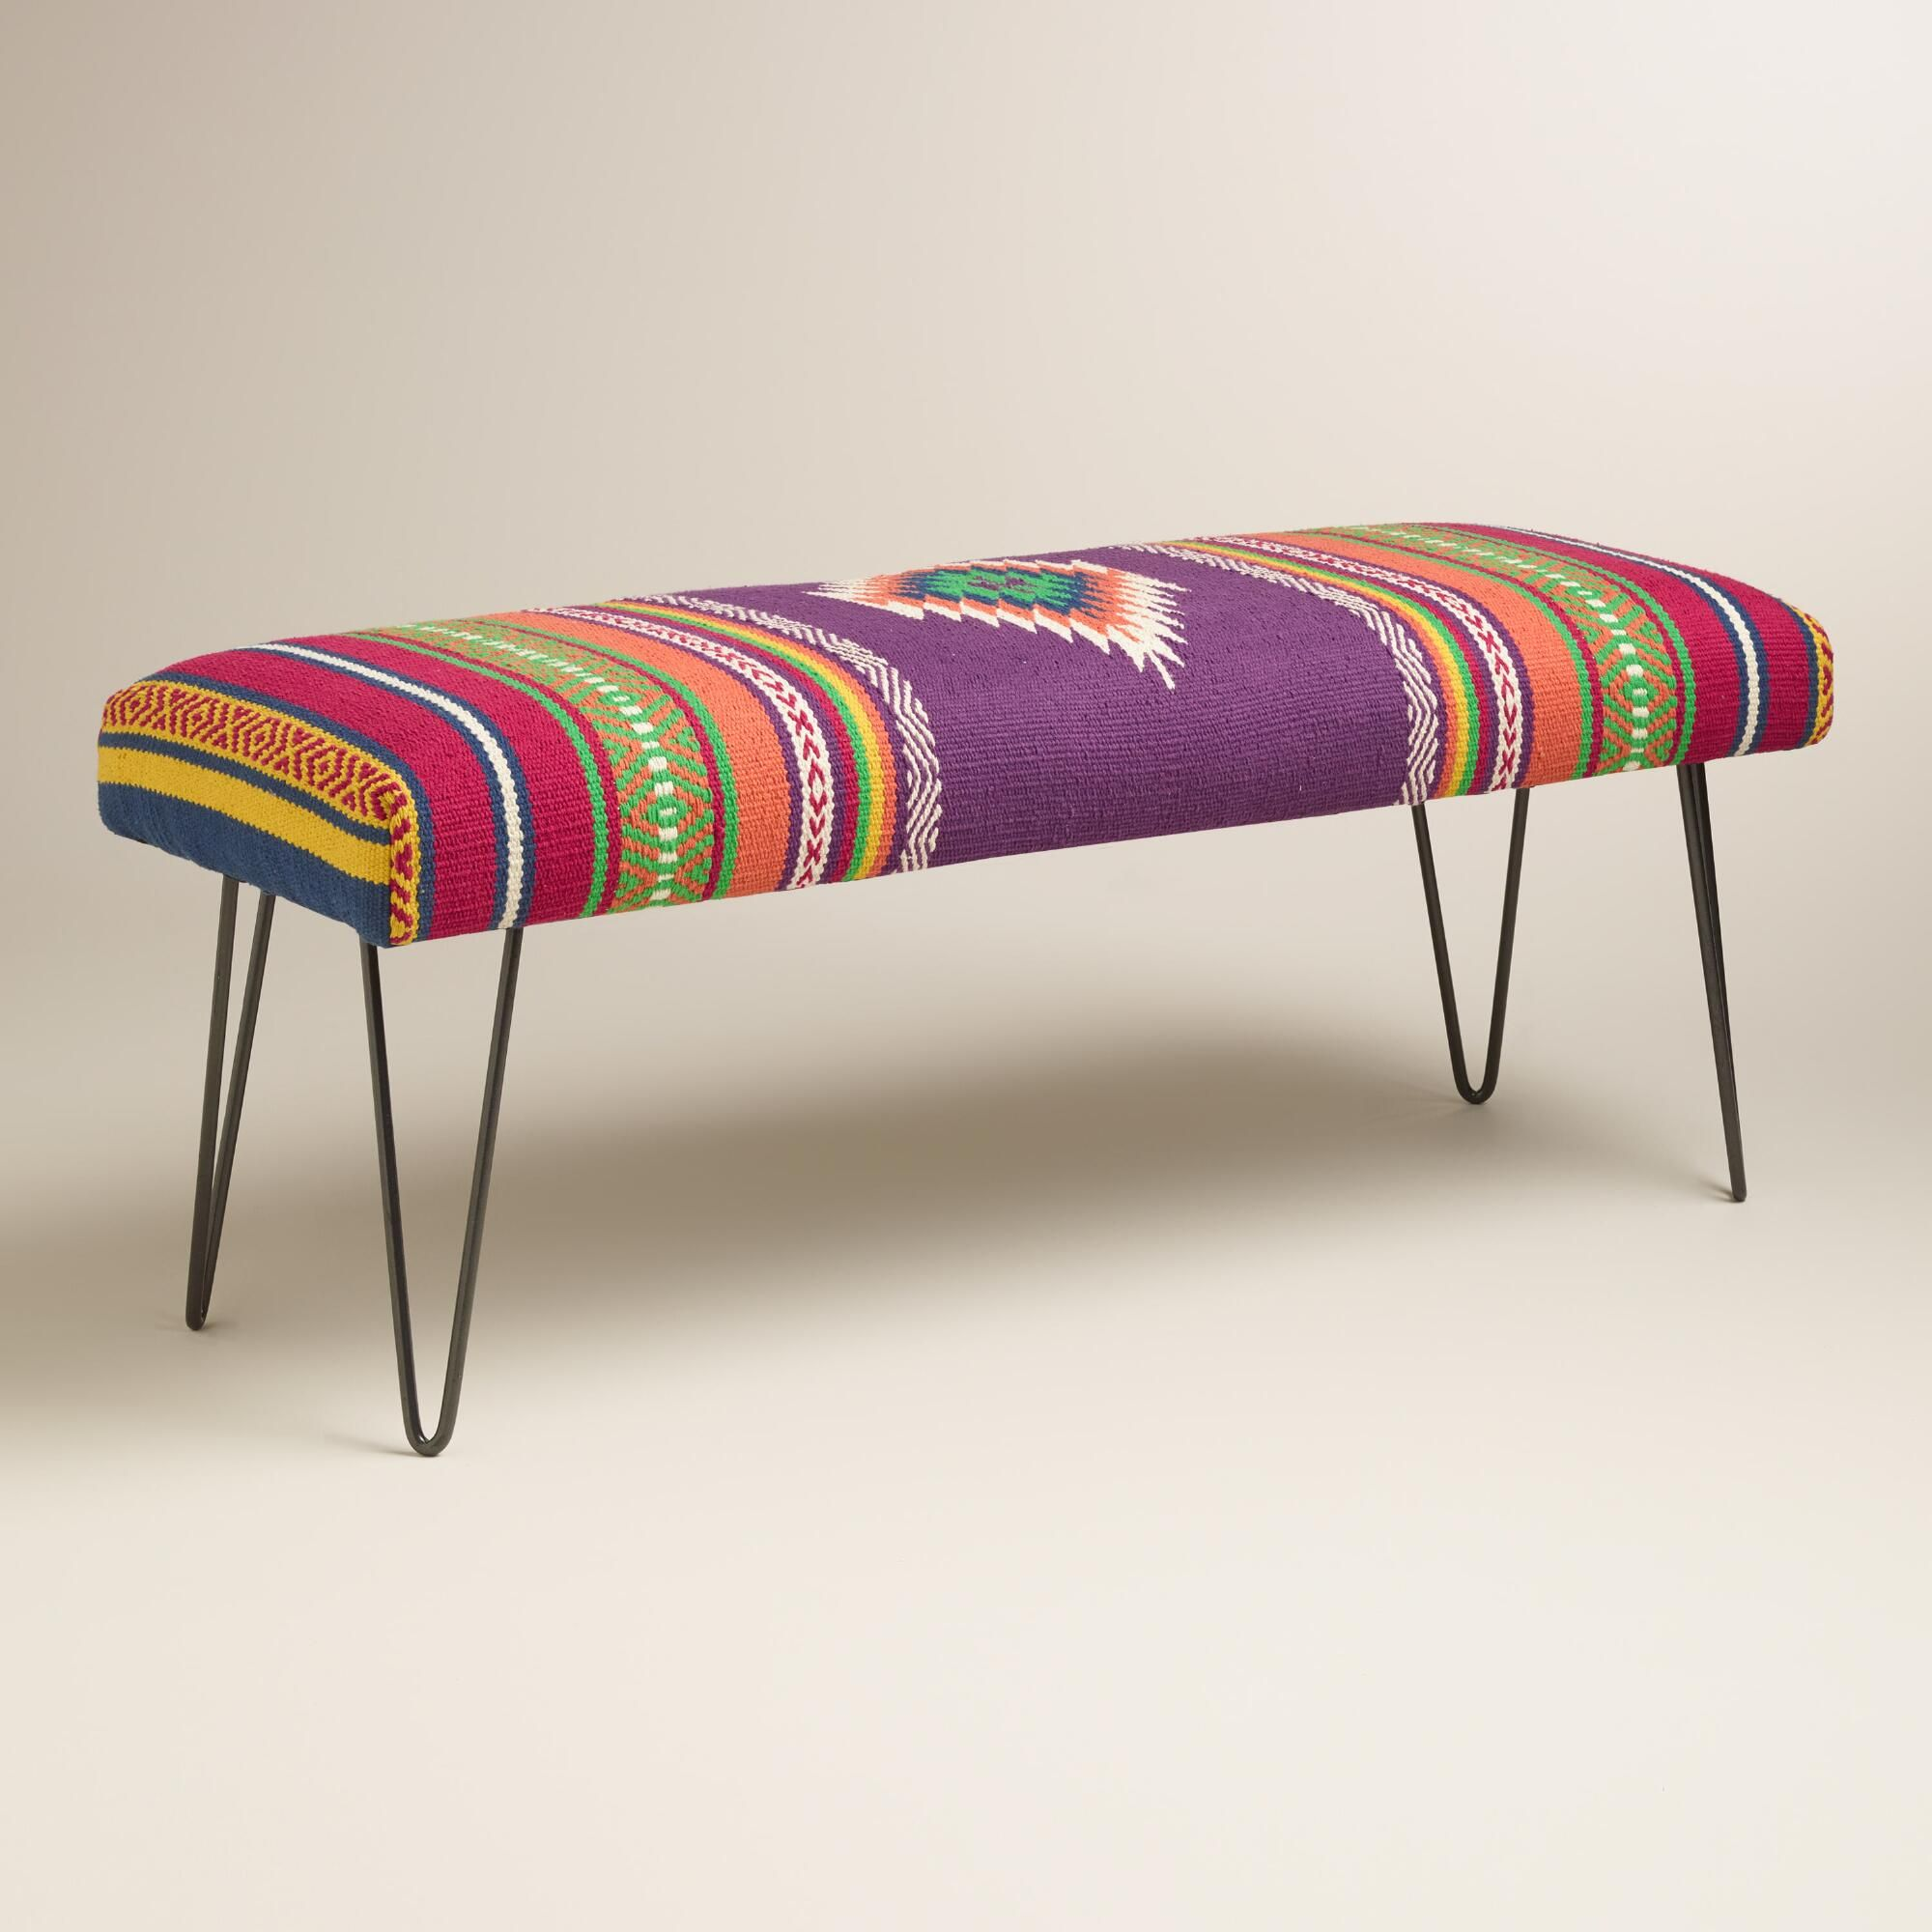 Our Hairpin Leg Bench Inspires A Boho Vibe With Its